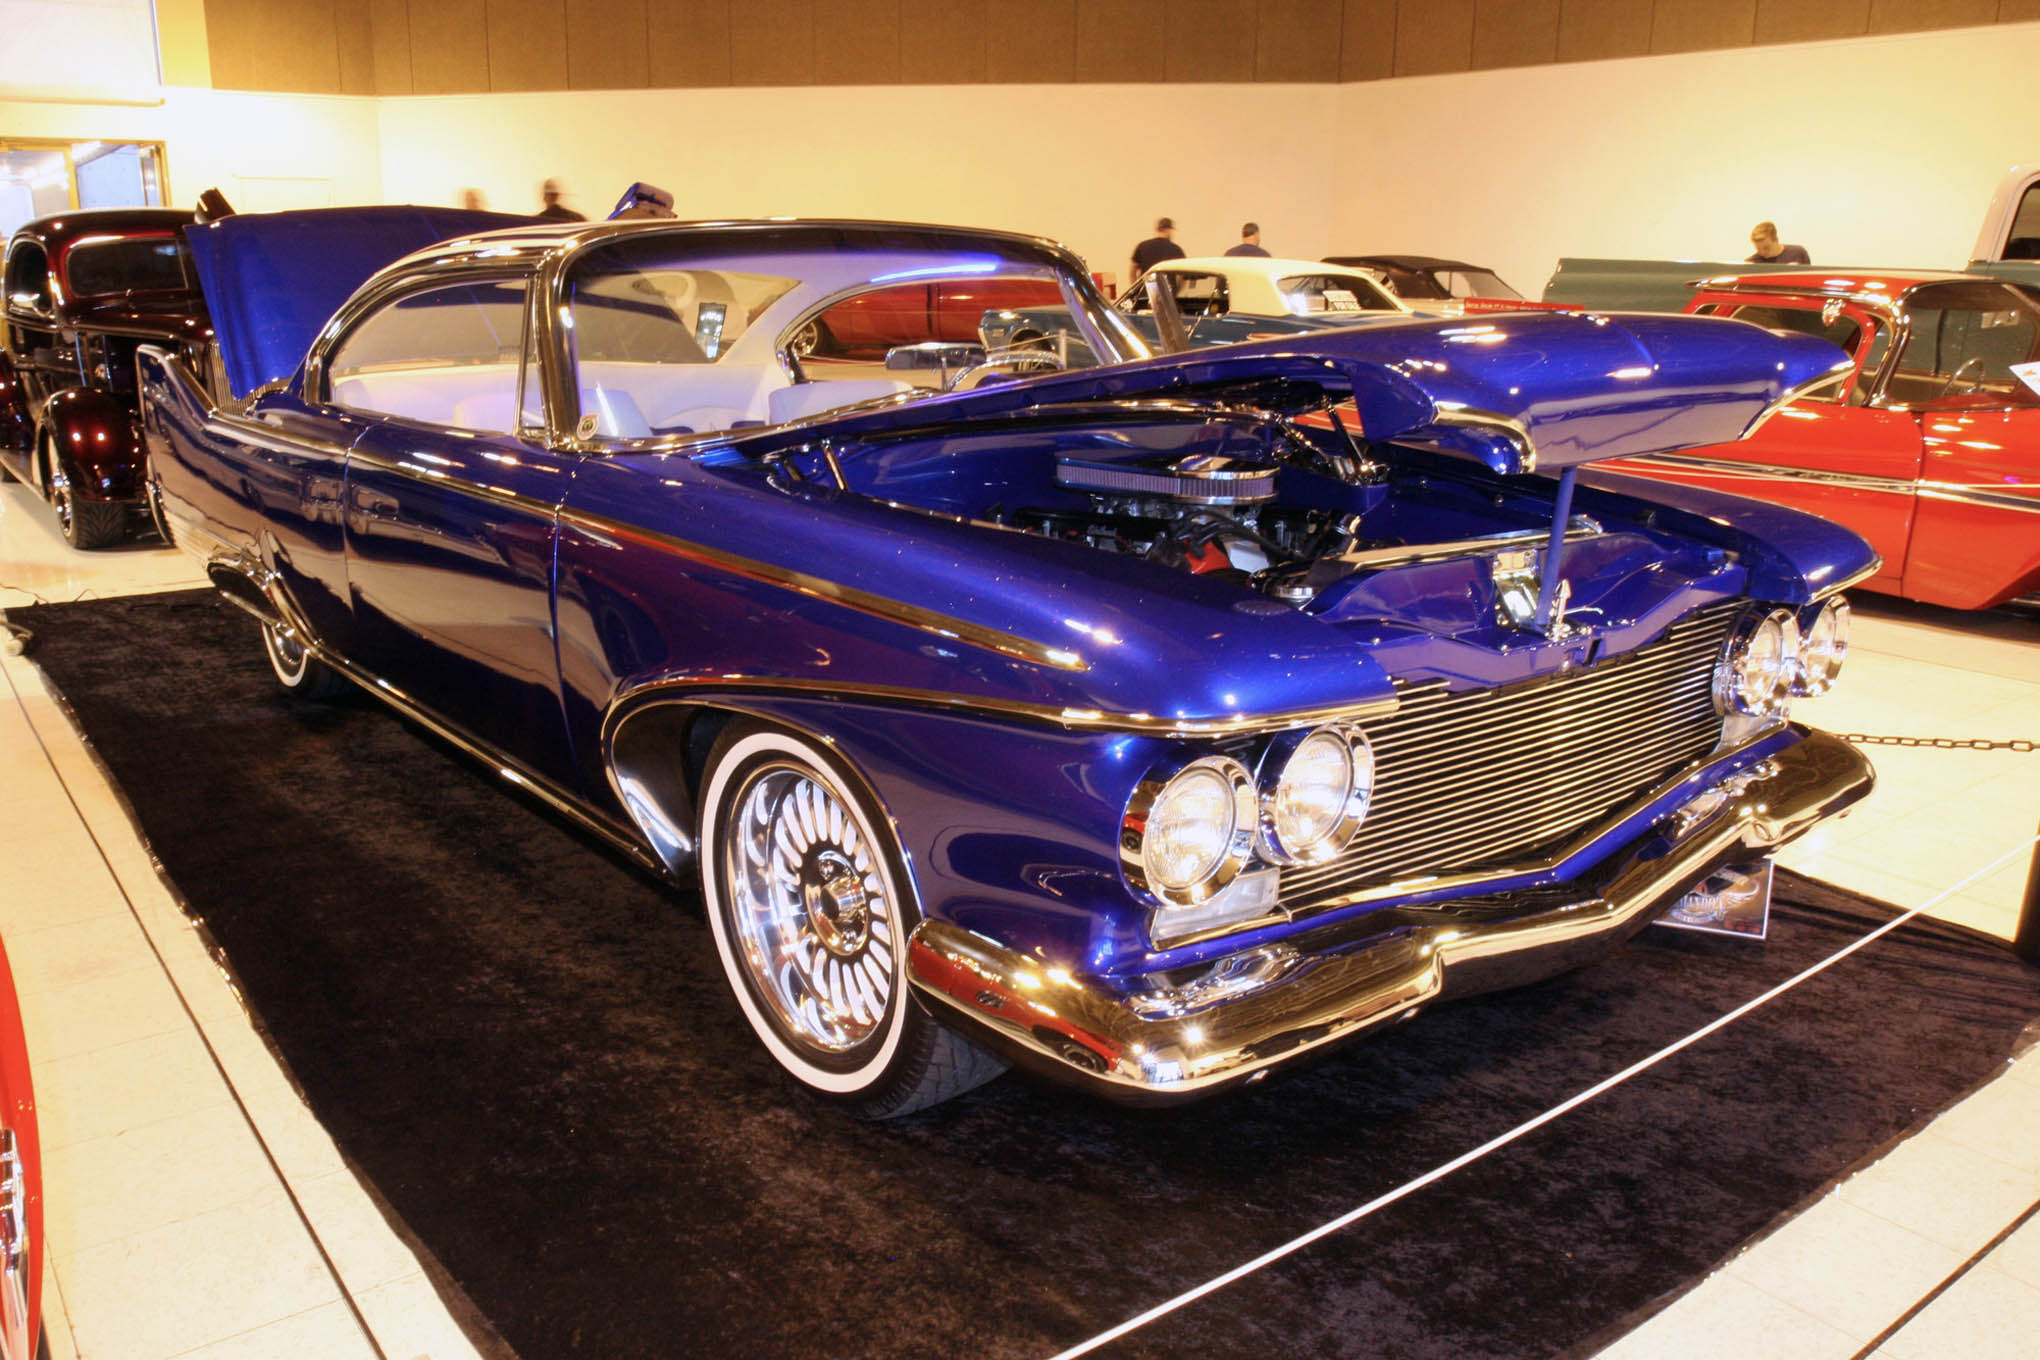 Scott Truss' 1960 Plymouth Fury is a muscle car in custom clothing. The body mods, interior, and paint are to car show level, but the 572ci stroker Hemi with Holley fuel injection under the hood was hot-rodded to make 700 hp. A 4L60E and Dana 60 back up the Hemi.